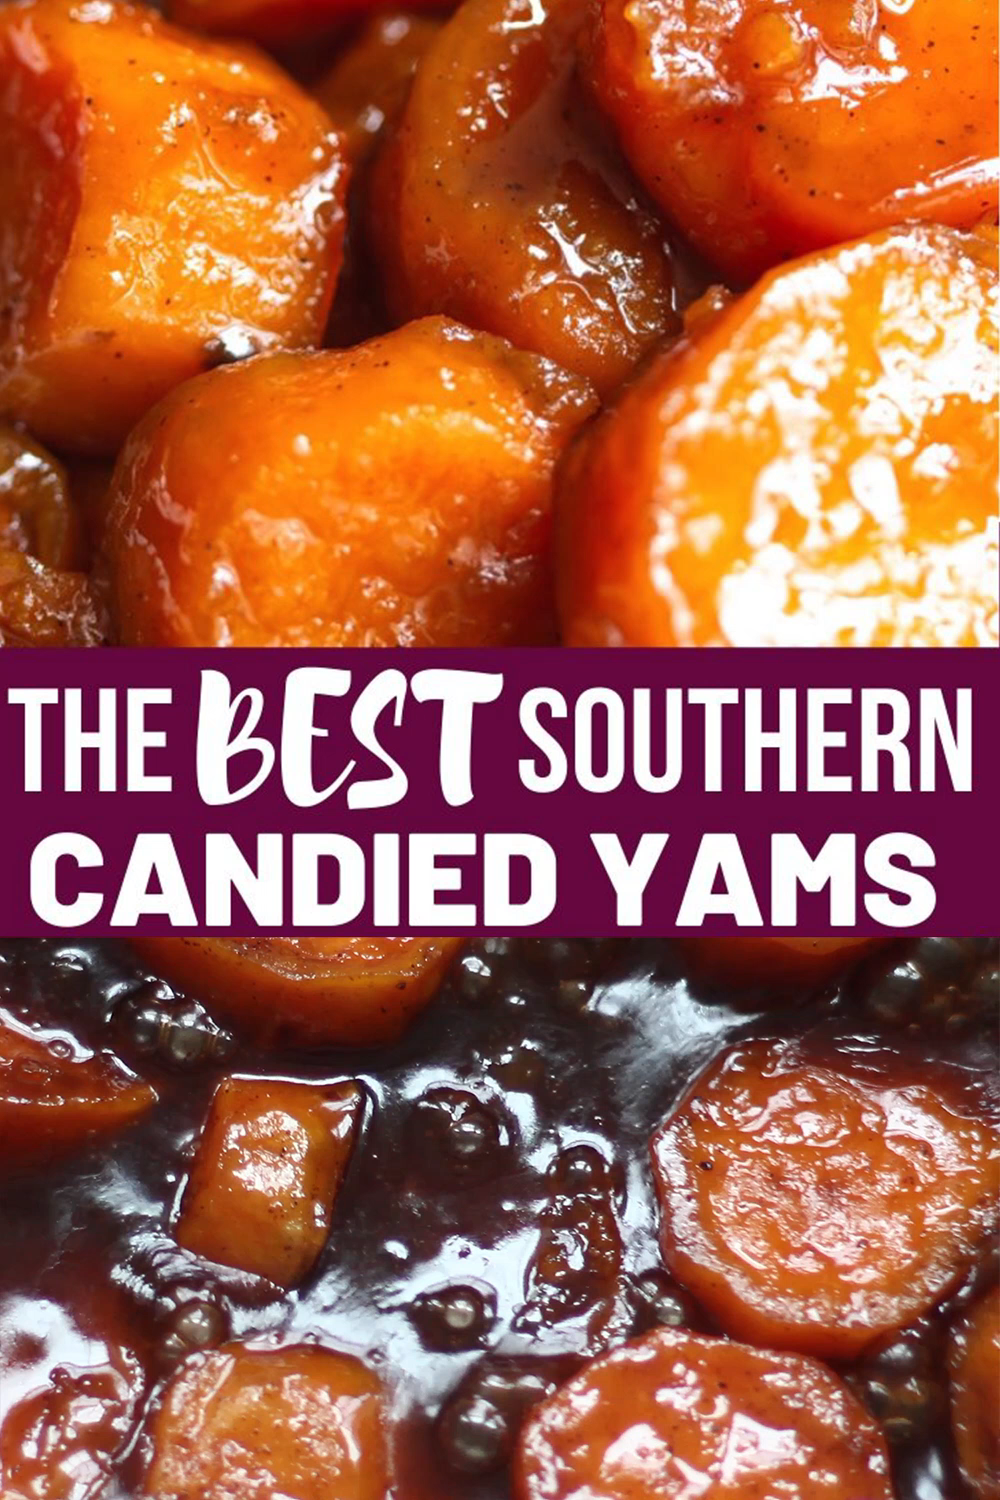 The Best Southern Candied Yams